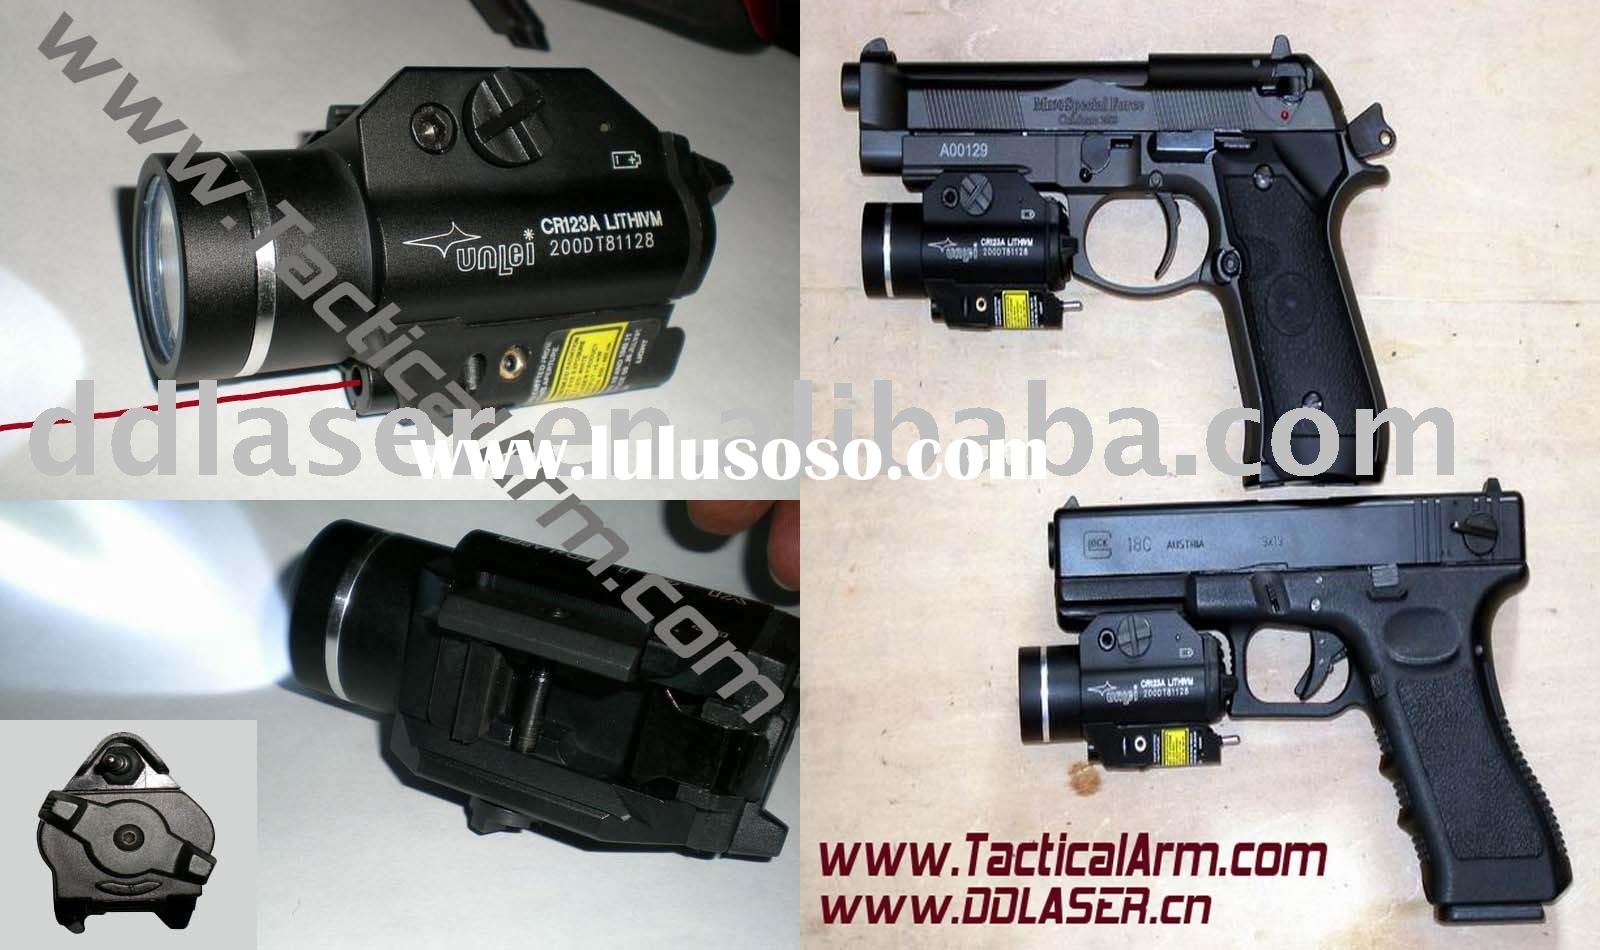 weapon light with red laser sight